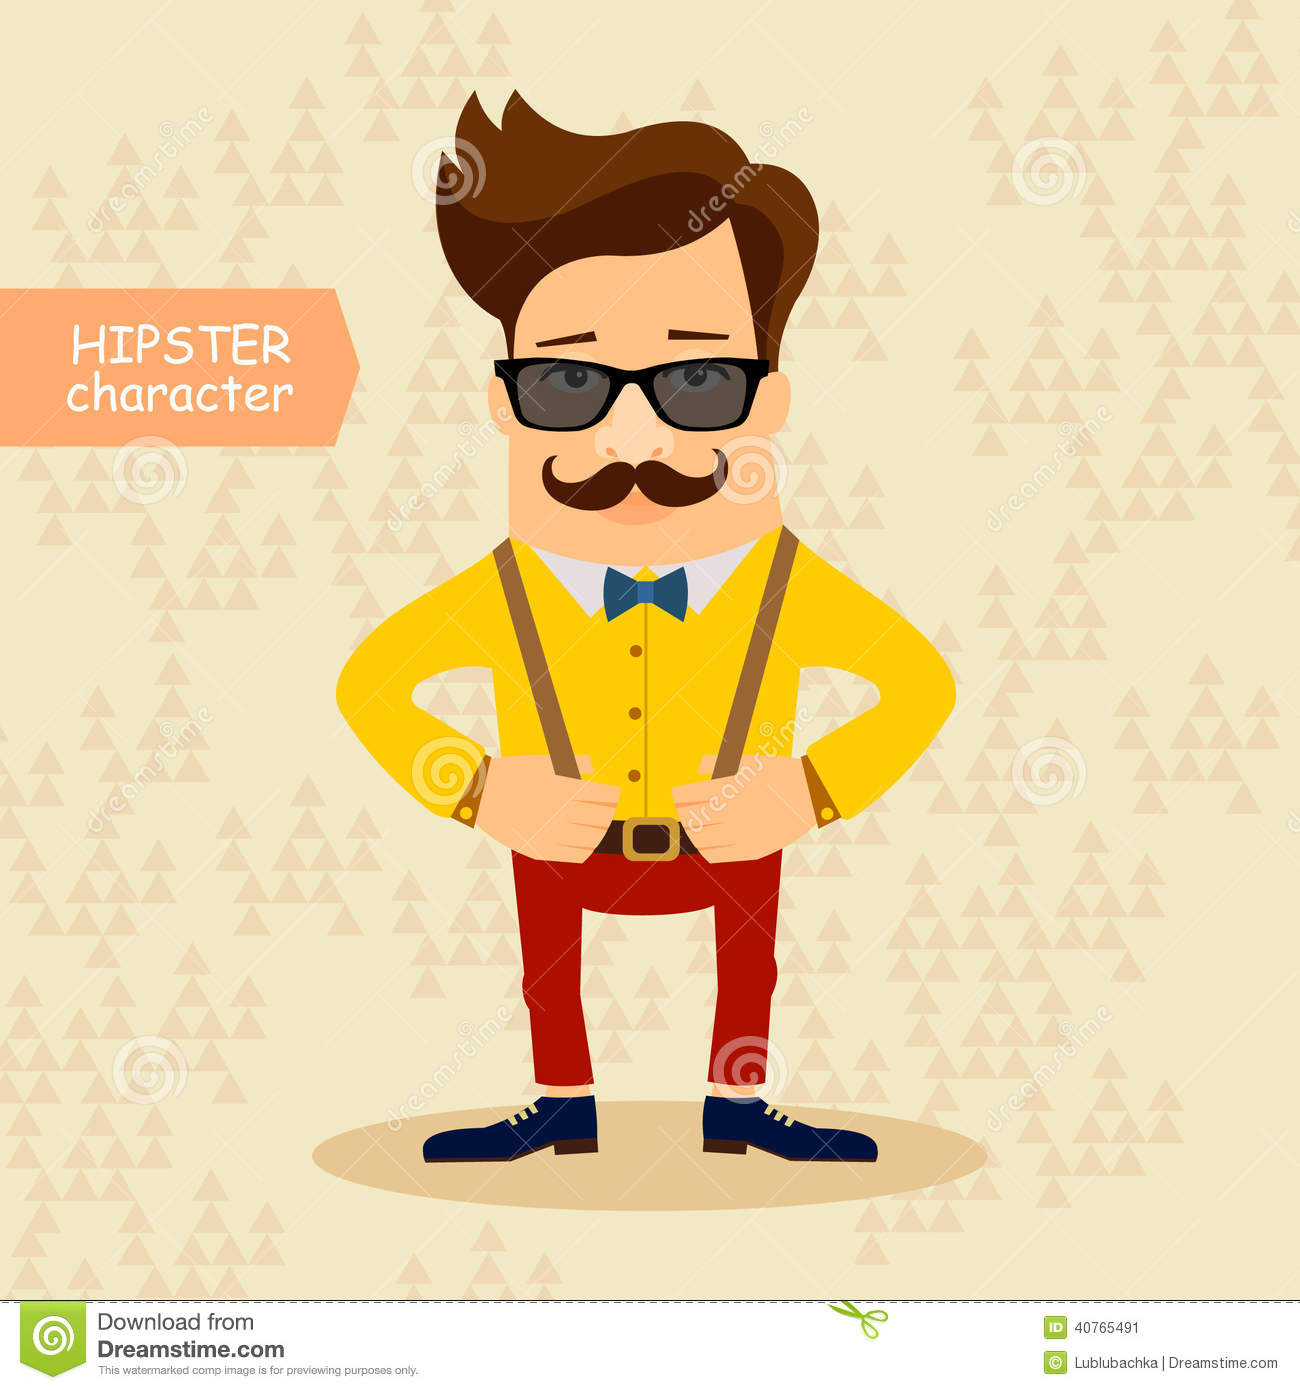 hipster cartoon character vintage fashion style vector illustration